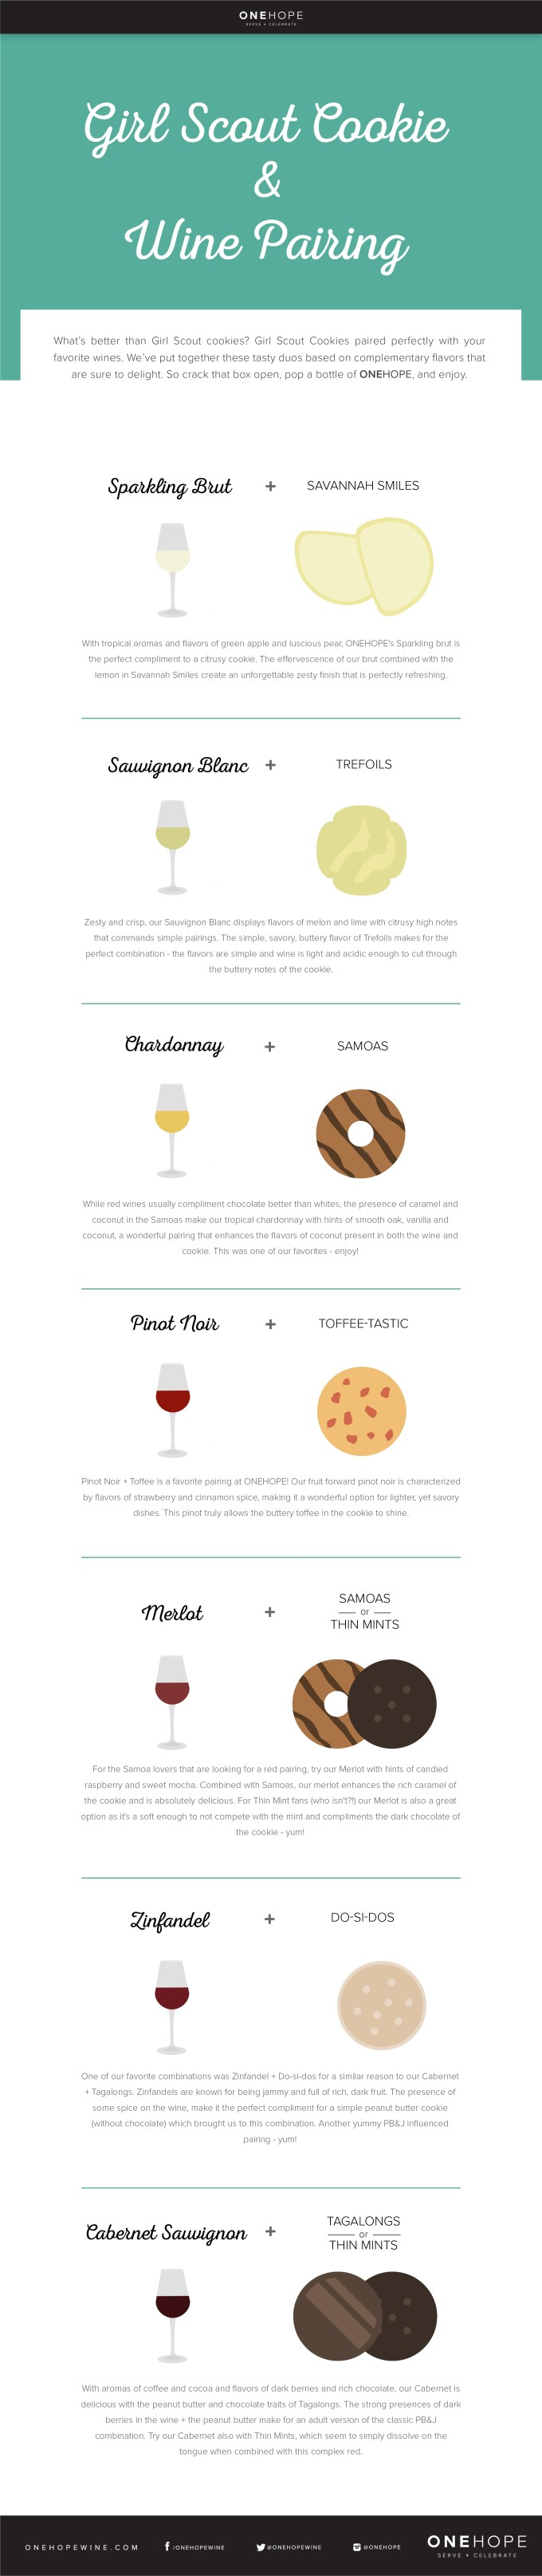 Girl Scout Cookies + Wine Pairing Guide